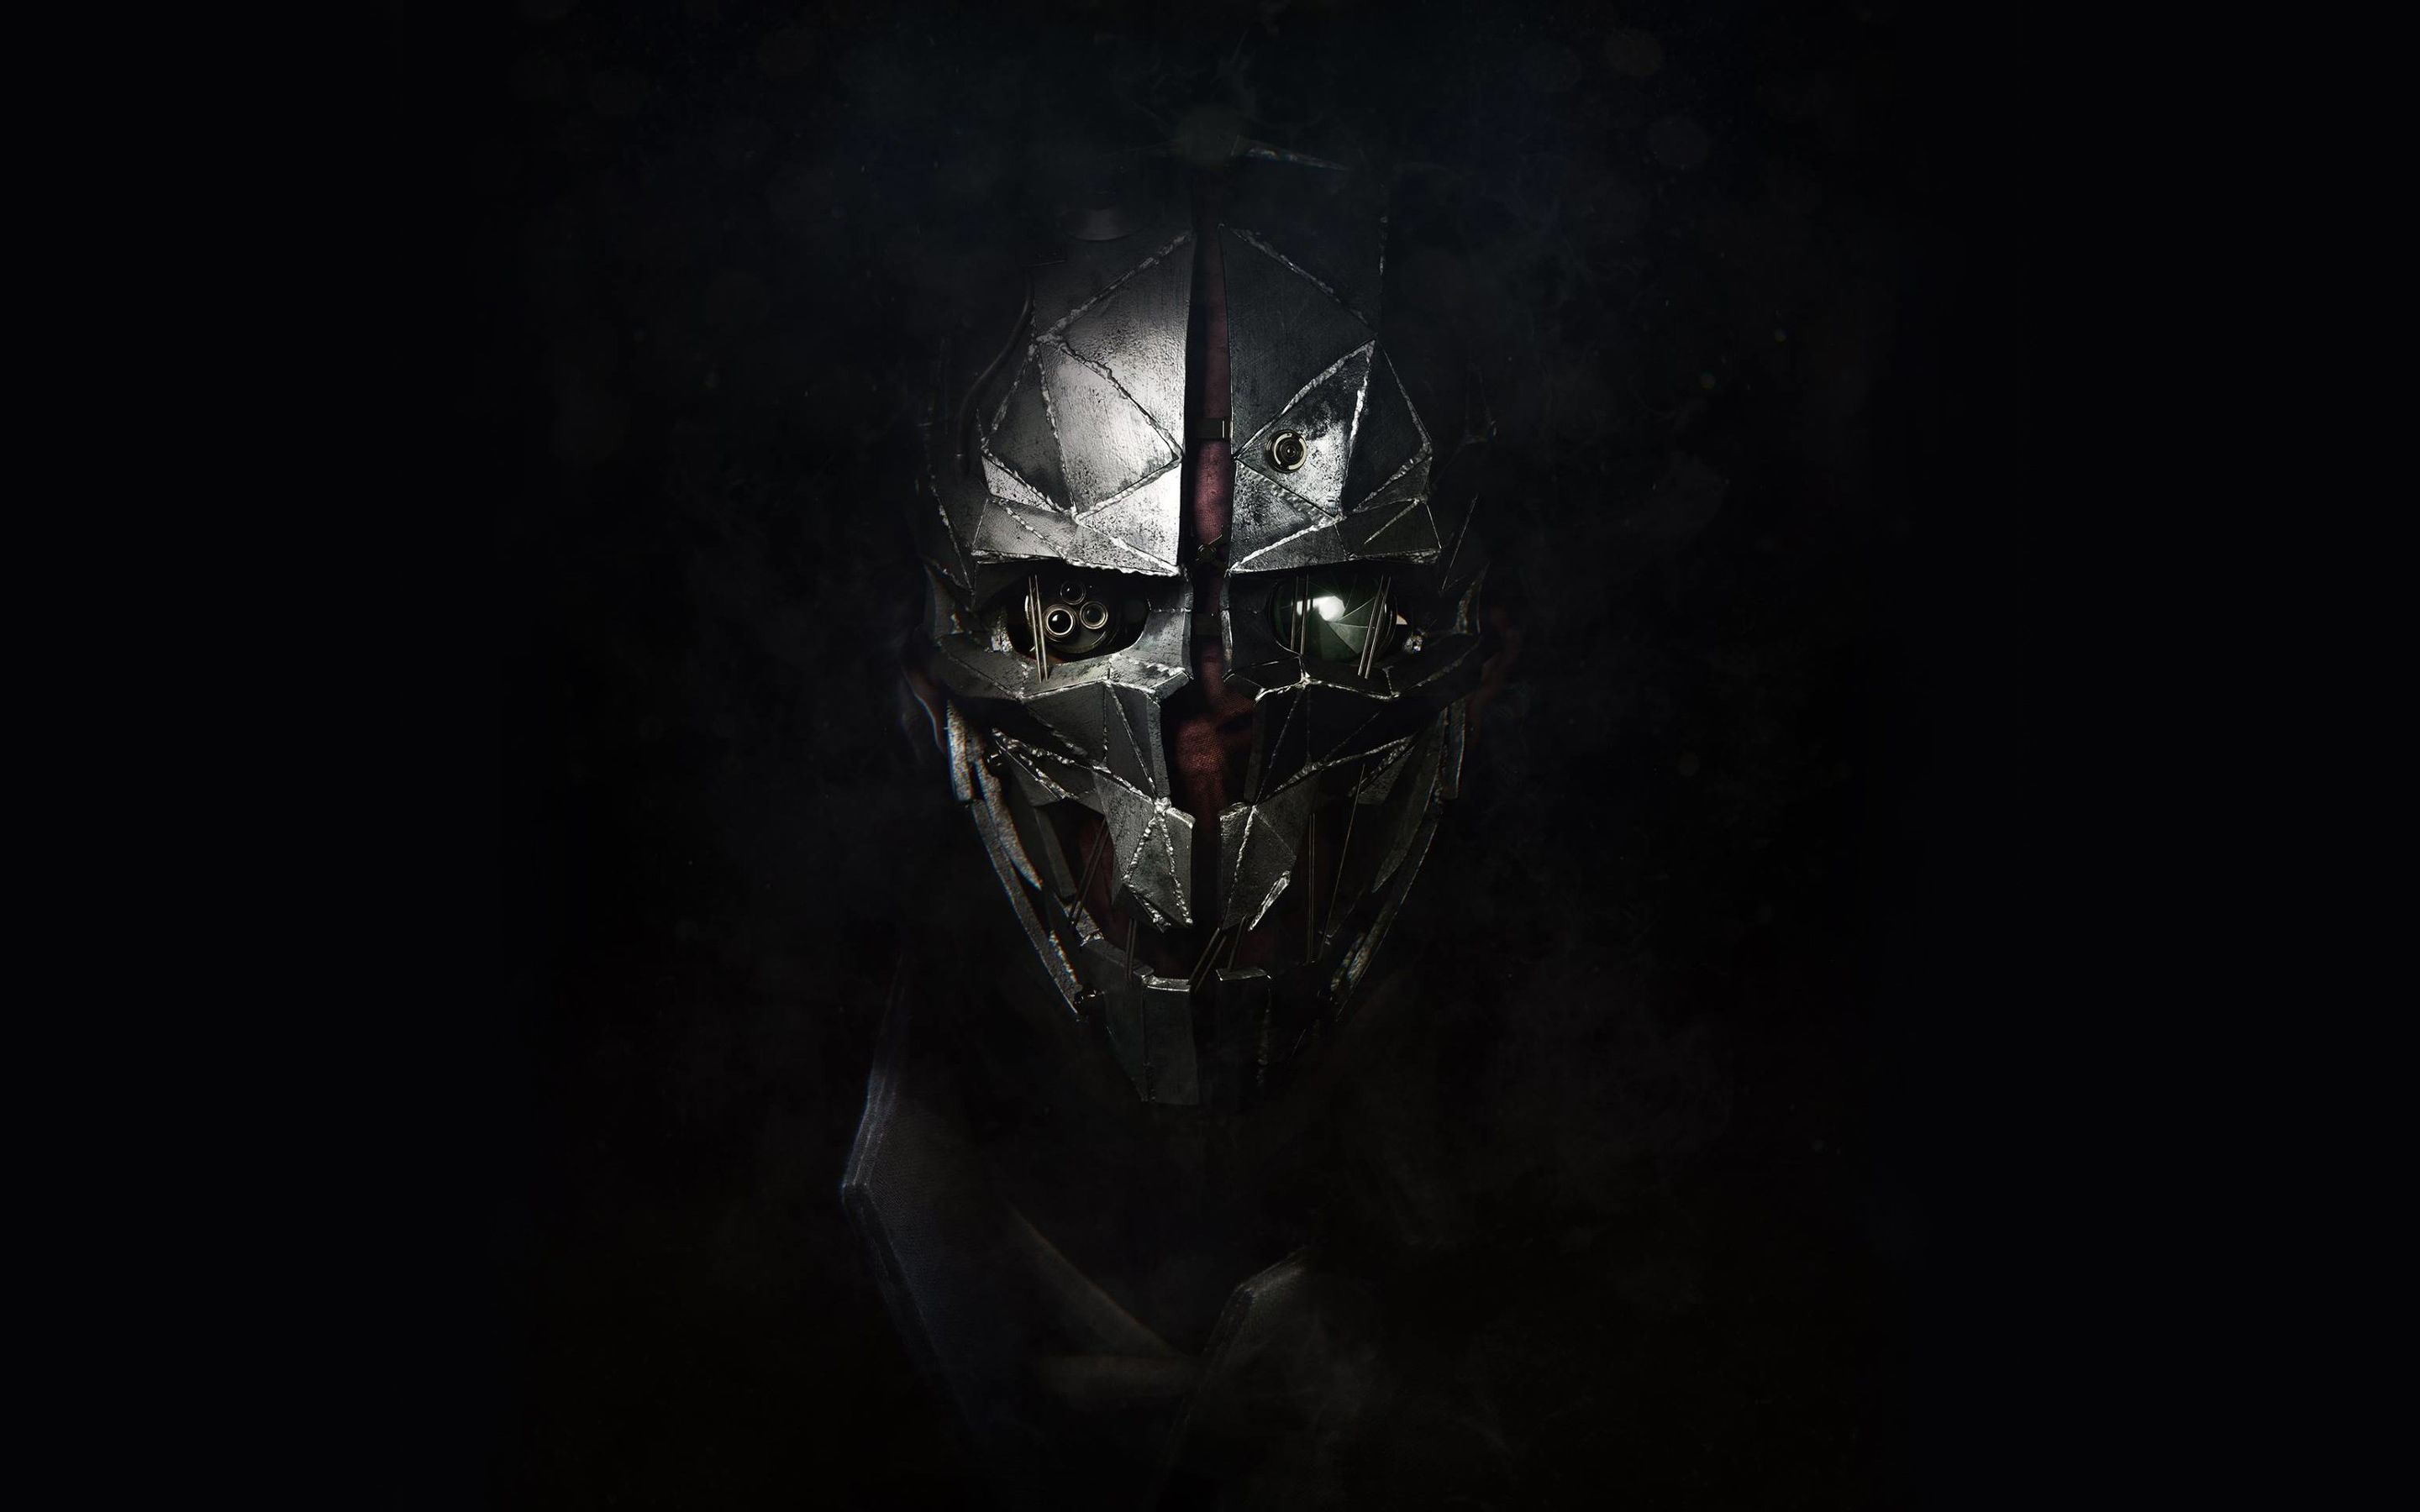 Dishonored 2 Emily Wallpapers 1080p On Wallpaper 1080p Hd Dishonored 2 Dishonored Corvo Mask